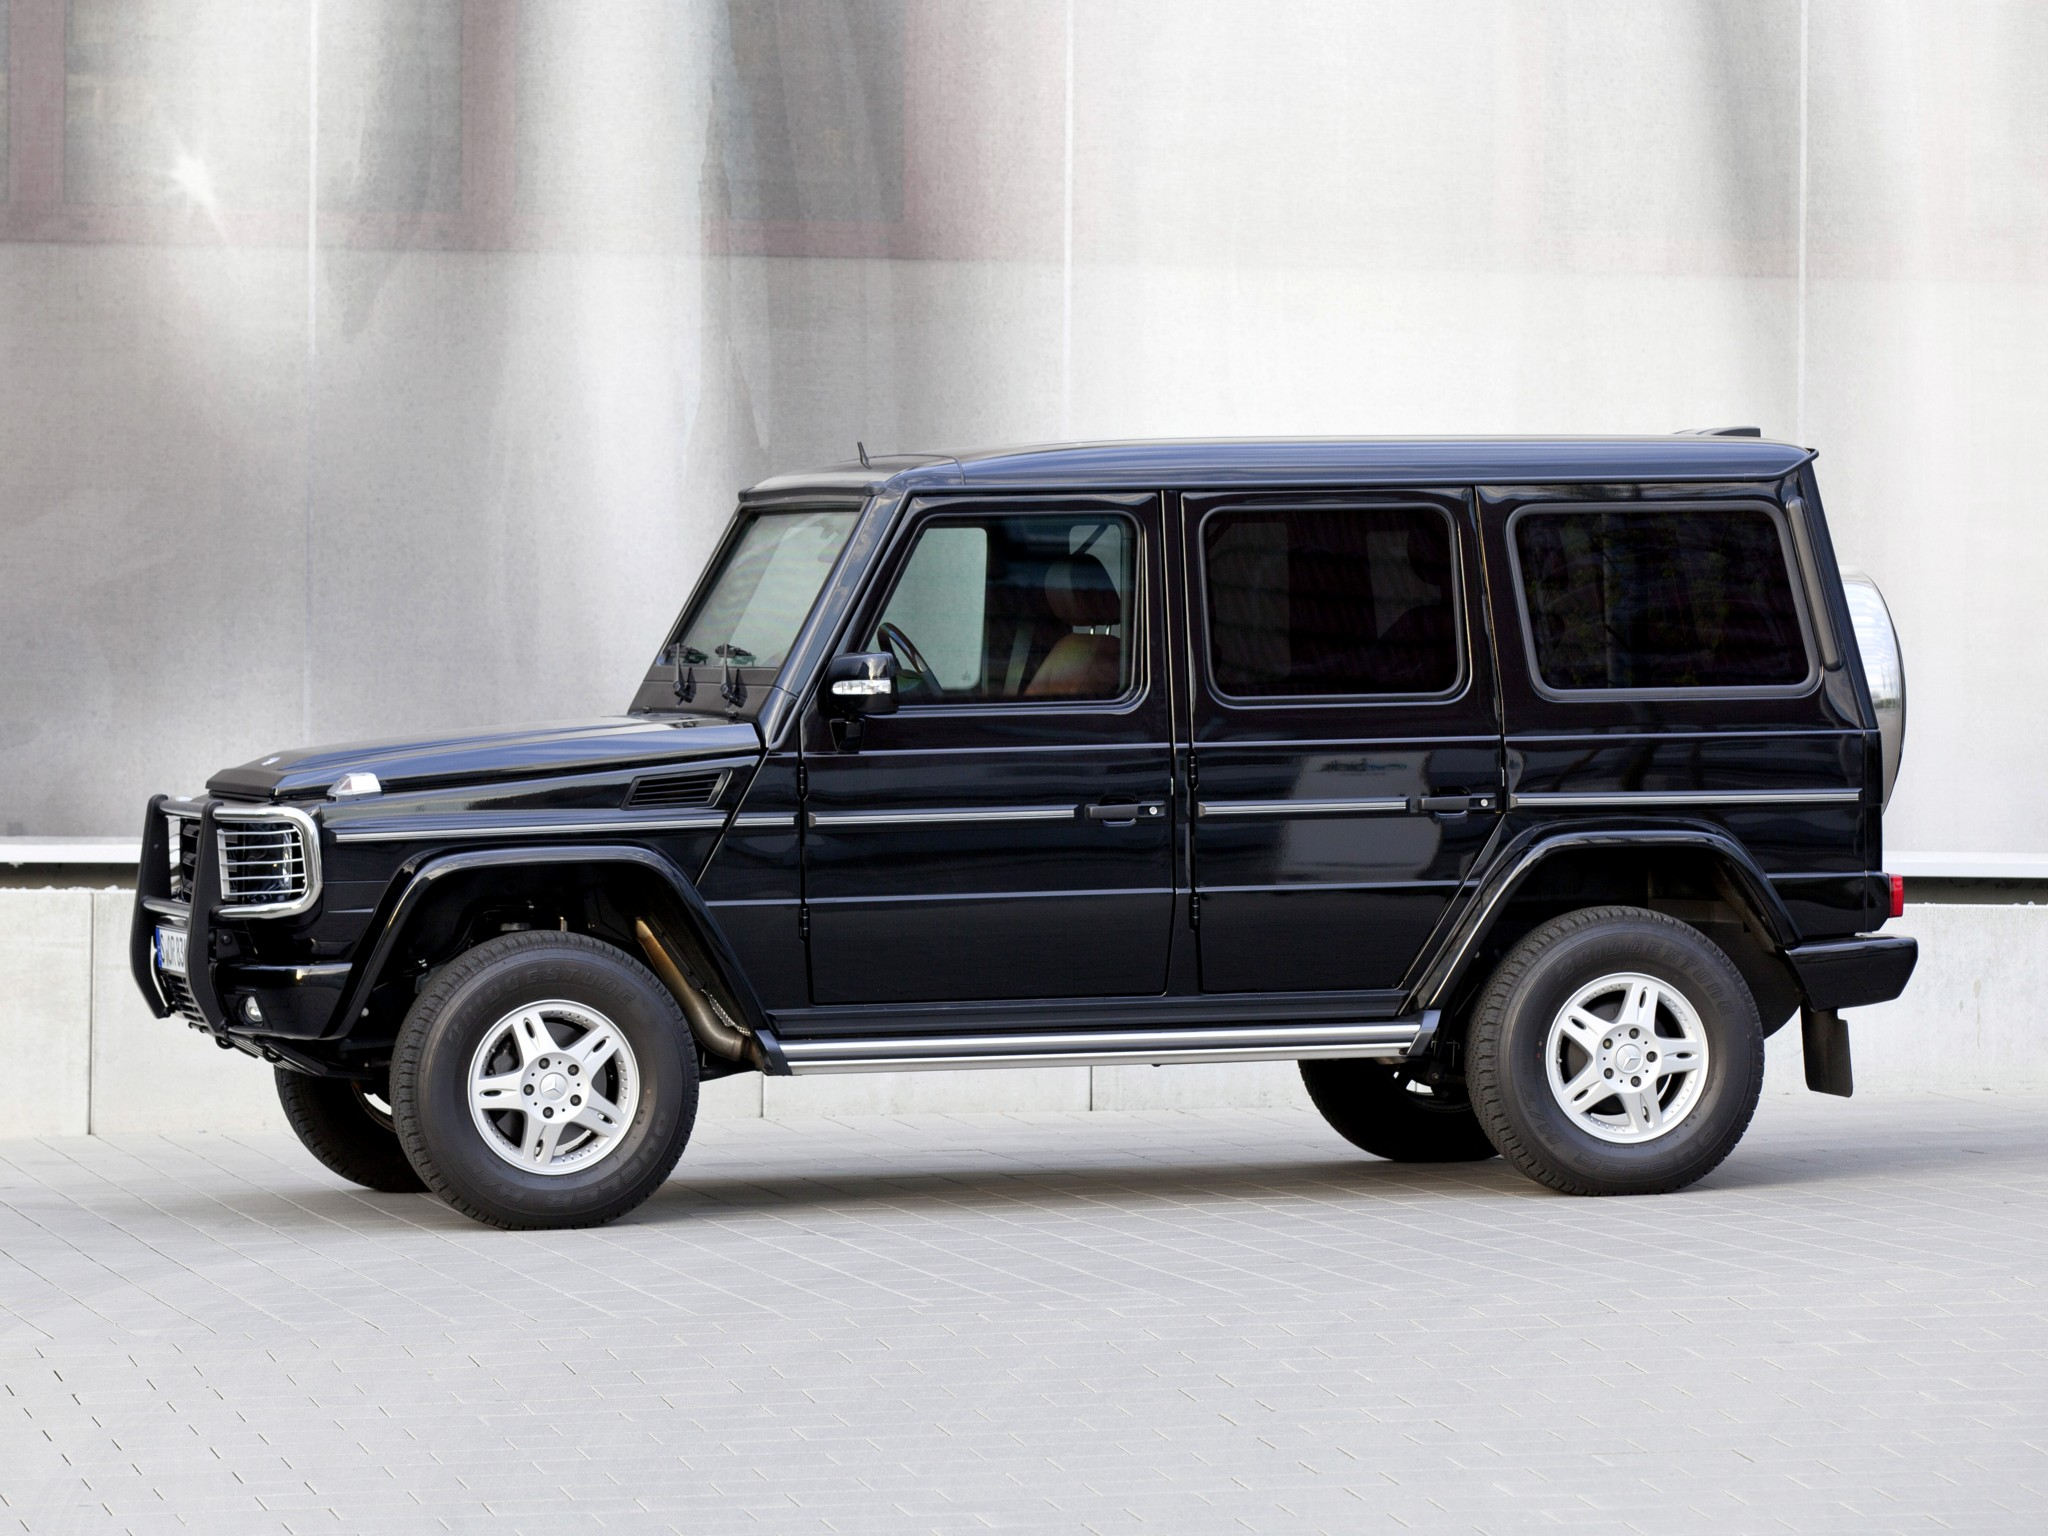 2009 armored mercedes benz g 500 guard w463 suv 4x4 gd for Mercedes benz armored